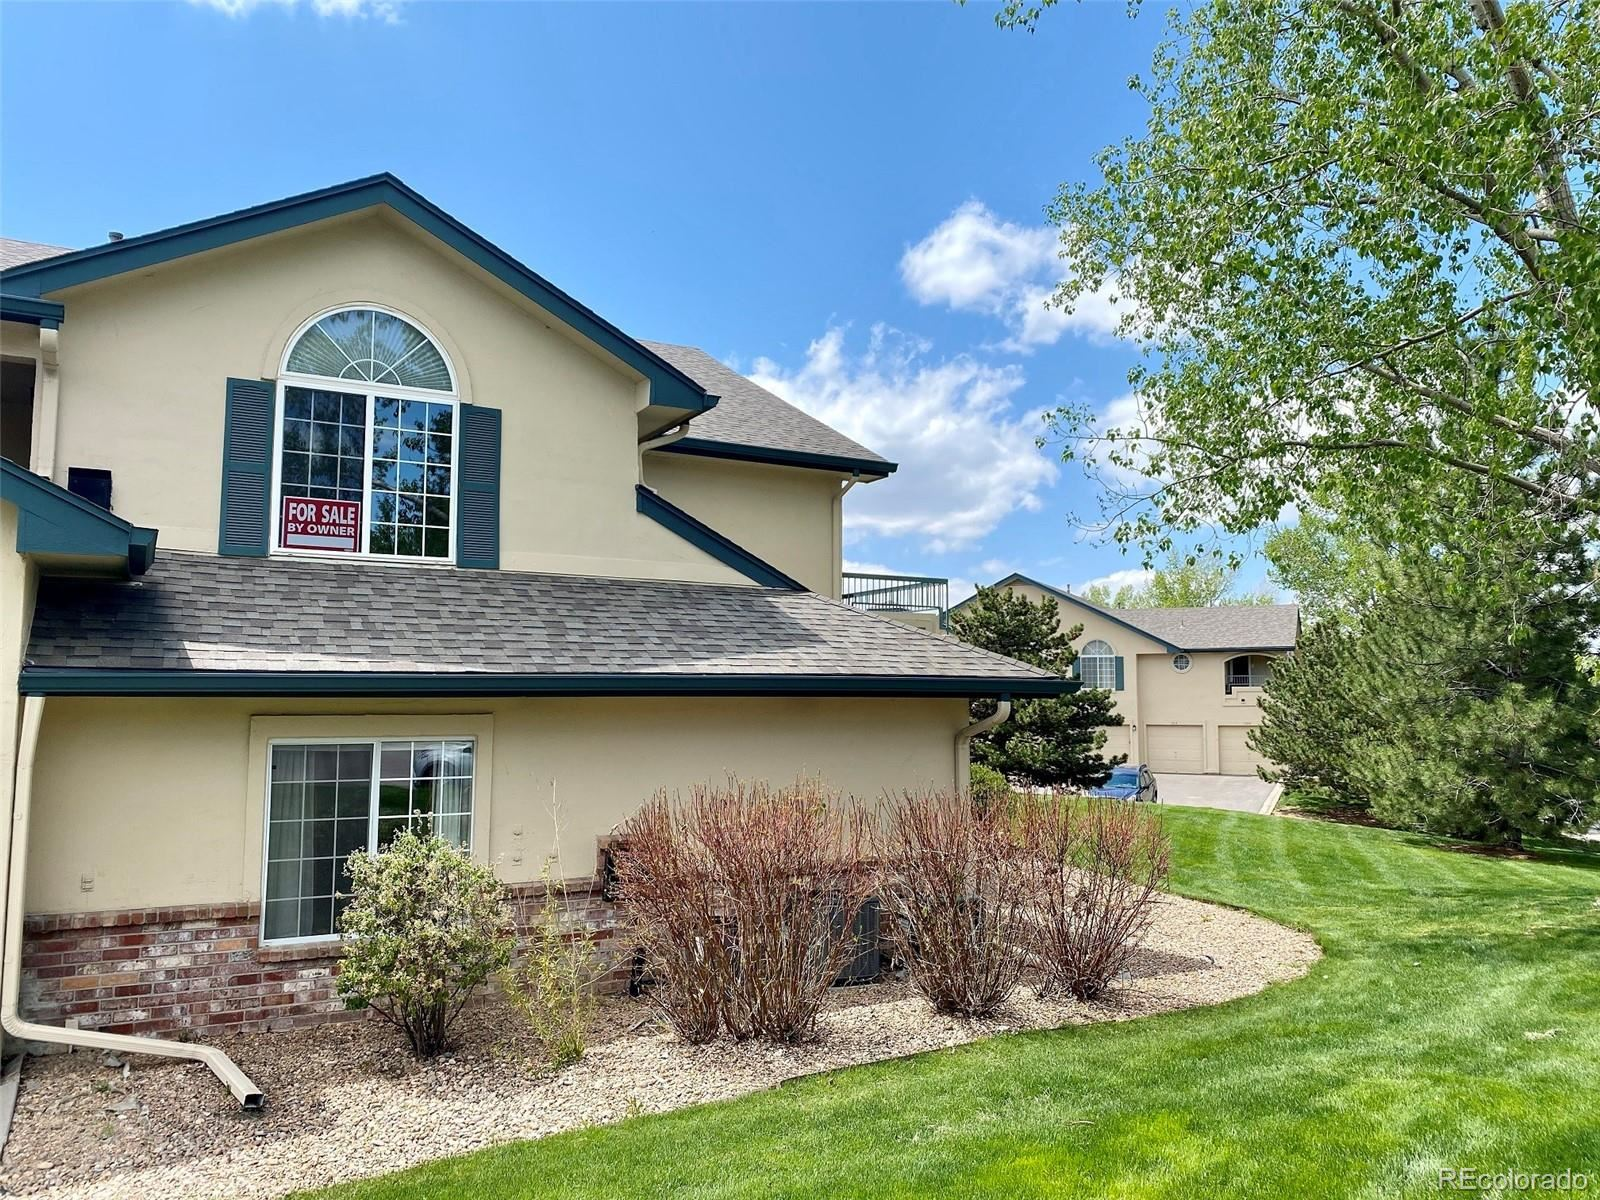 8693 E Dry Creek Road  924 #924, Centennial, CO 80112 - #: 1880971